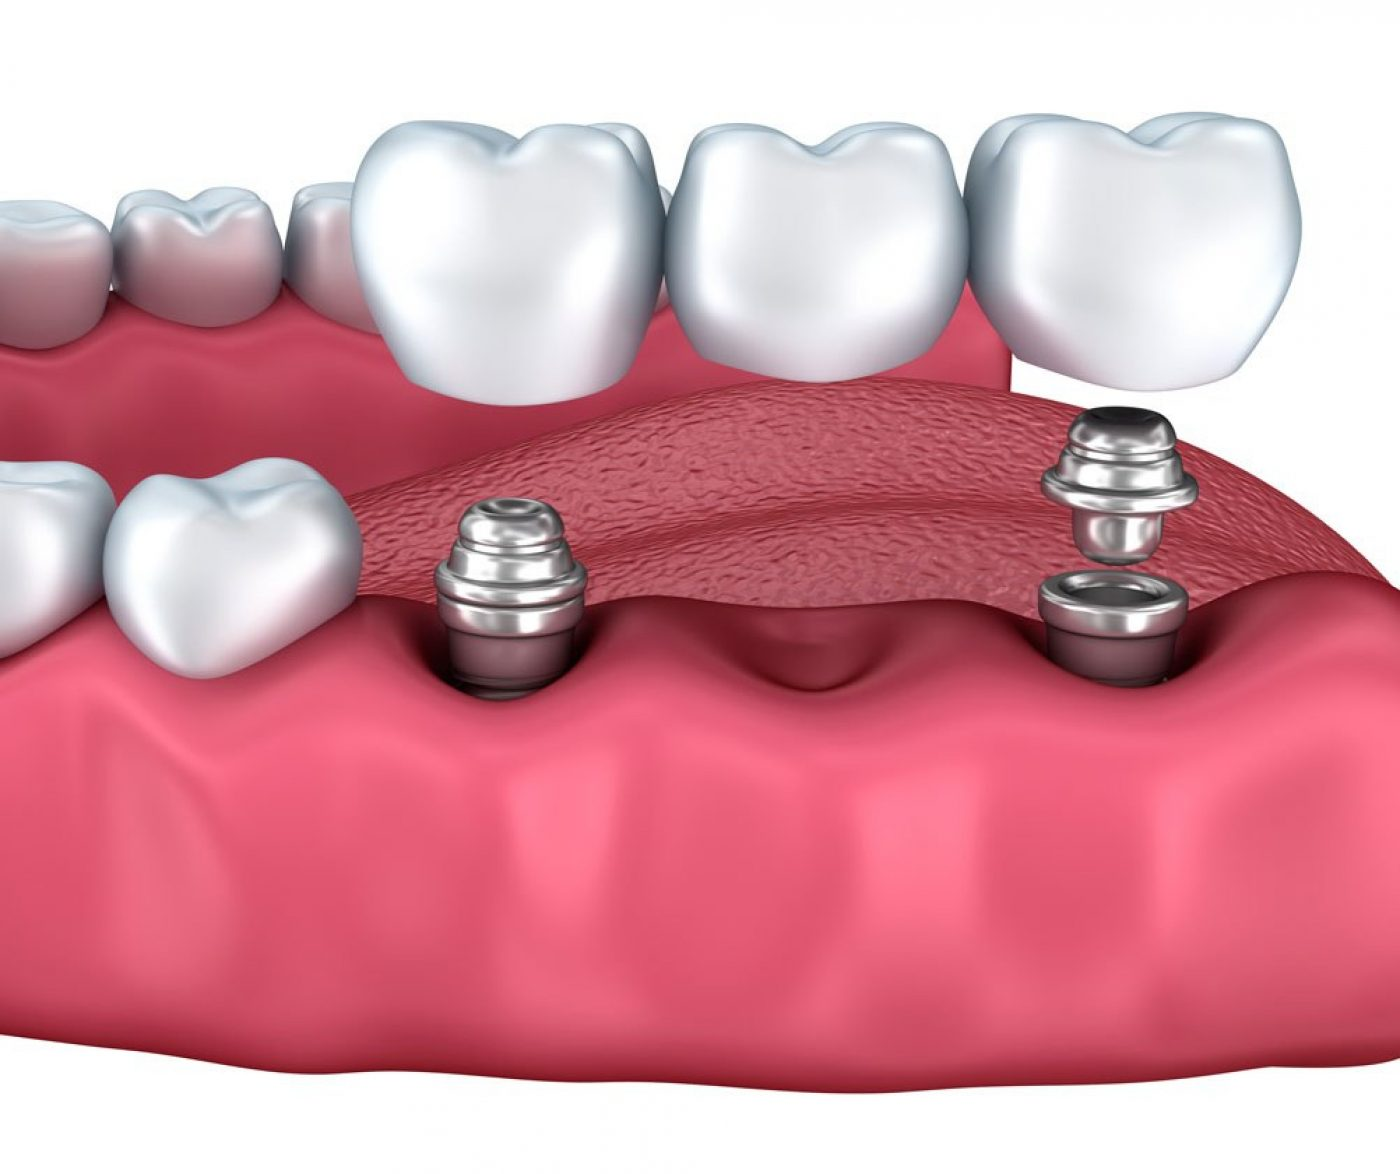 Walker Associates Dental Implant Clinic Dental Implants Multiple